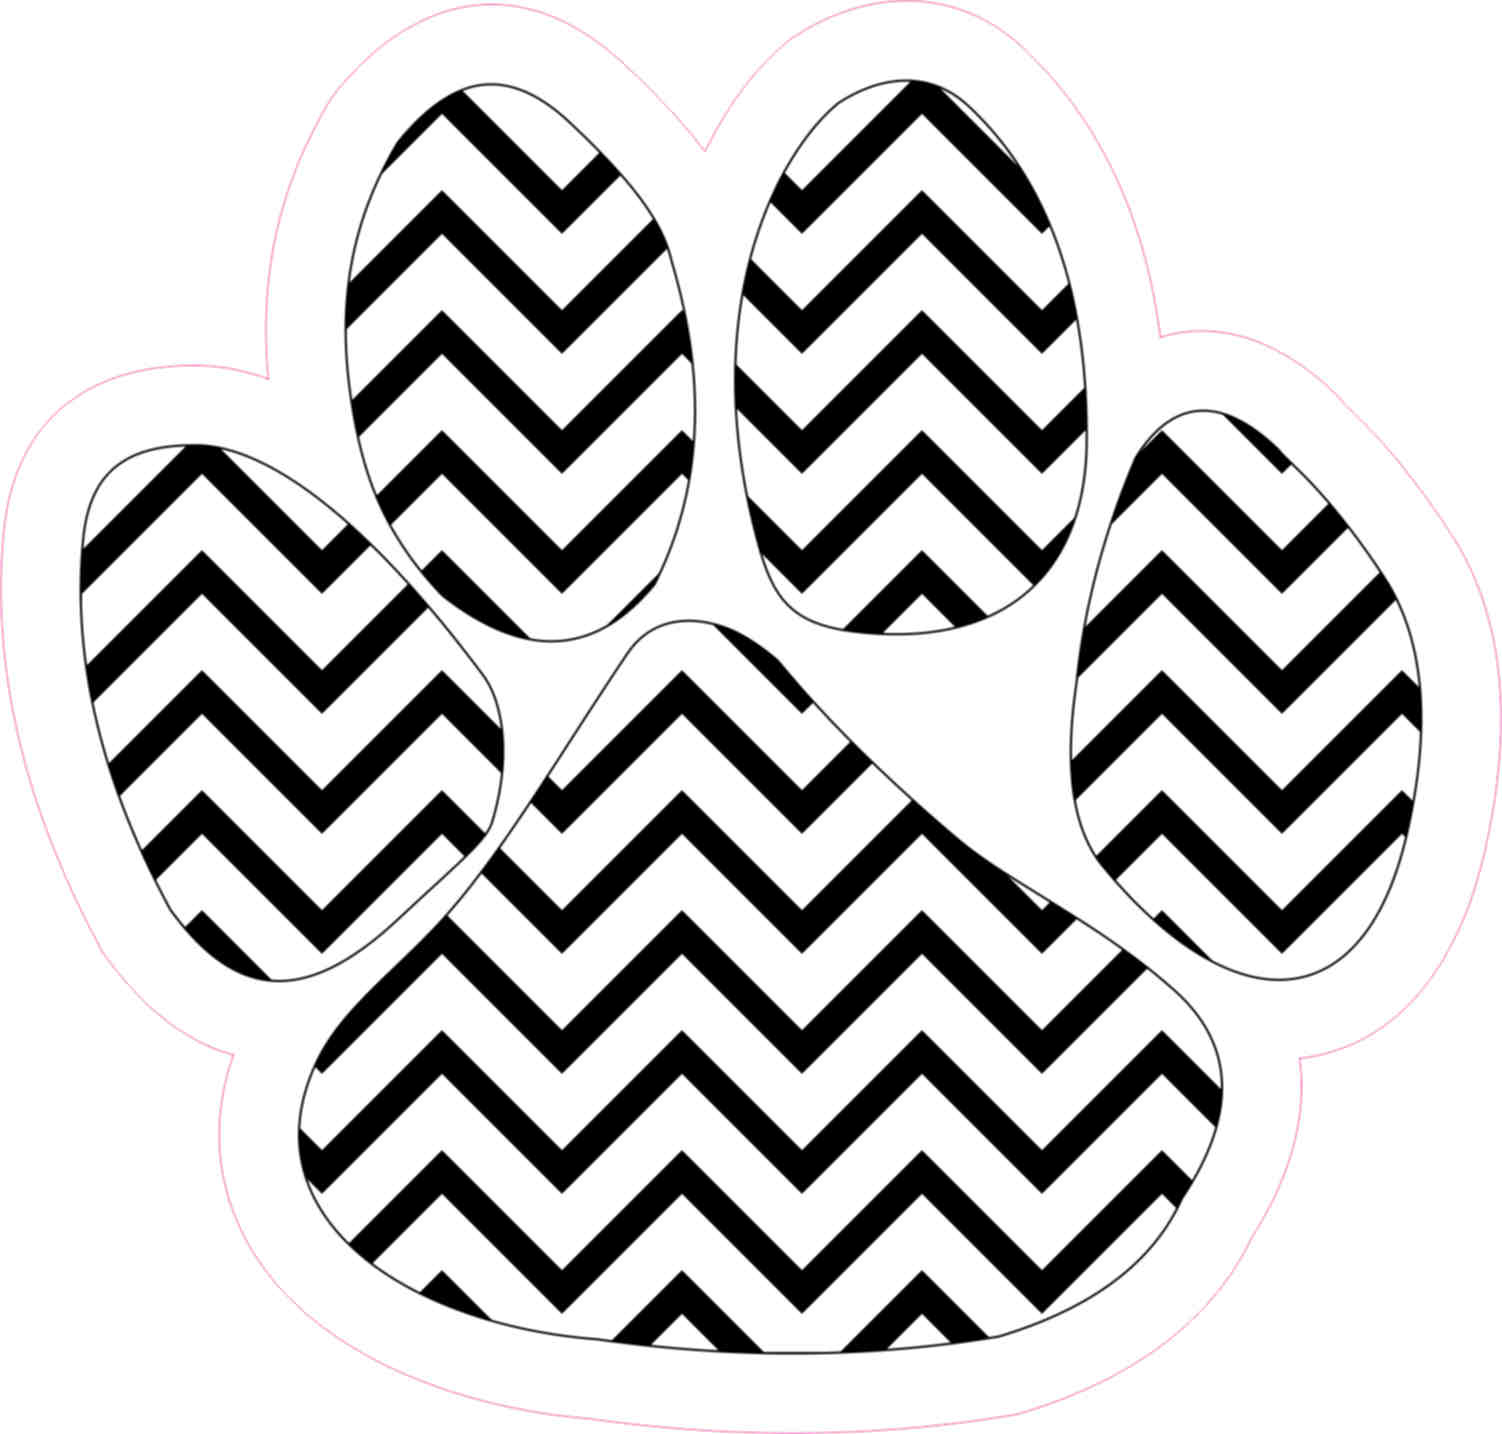 4 75in X 5in Black And White Chevron Paw Print Bumper